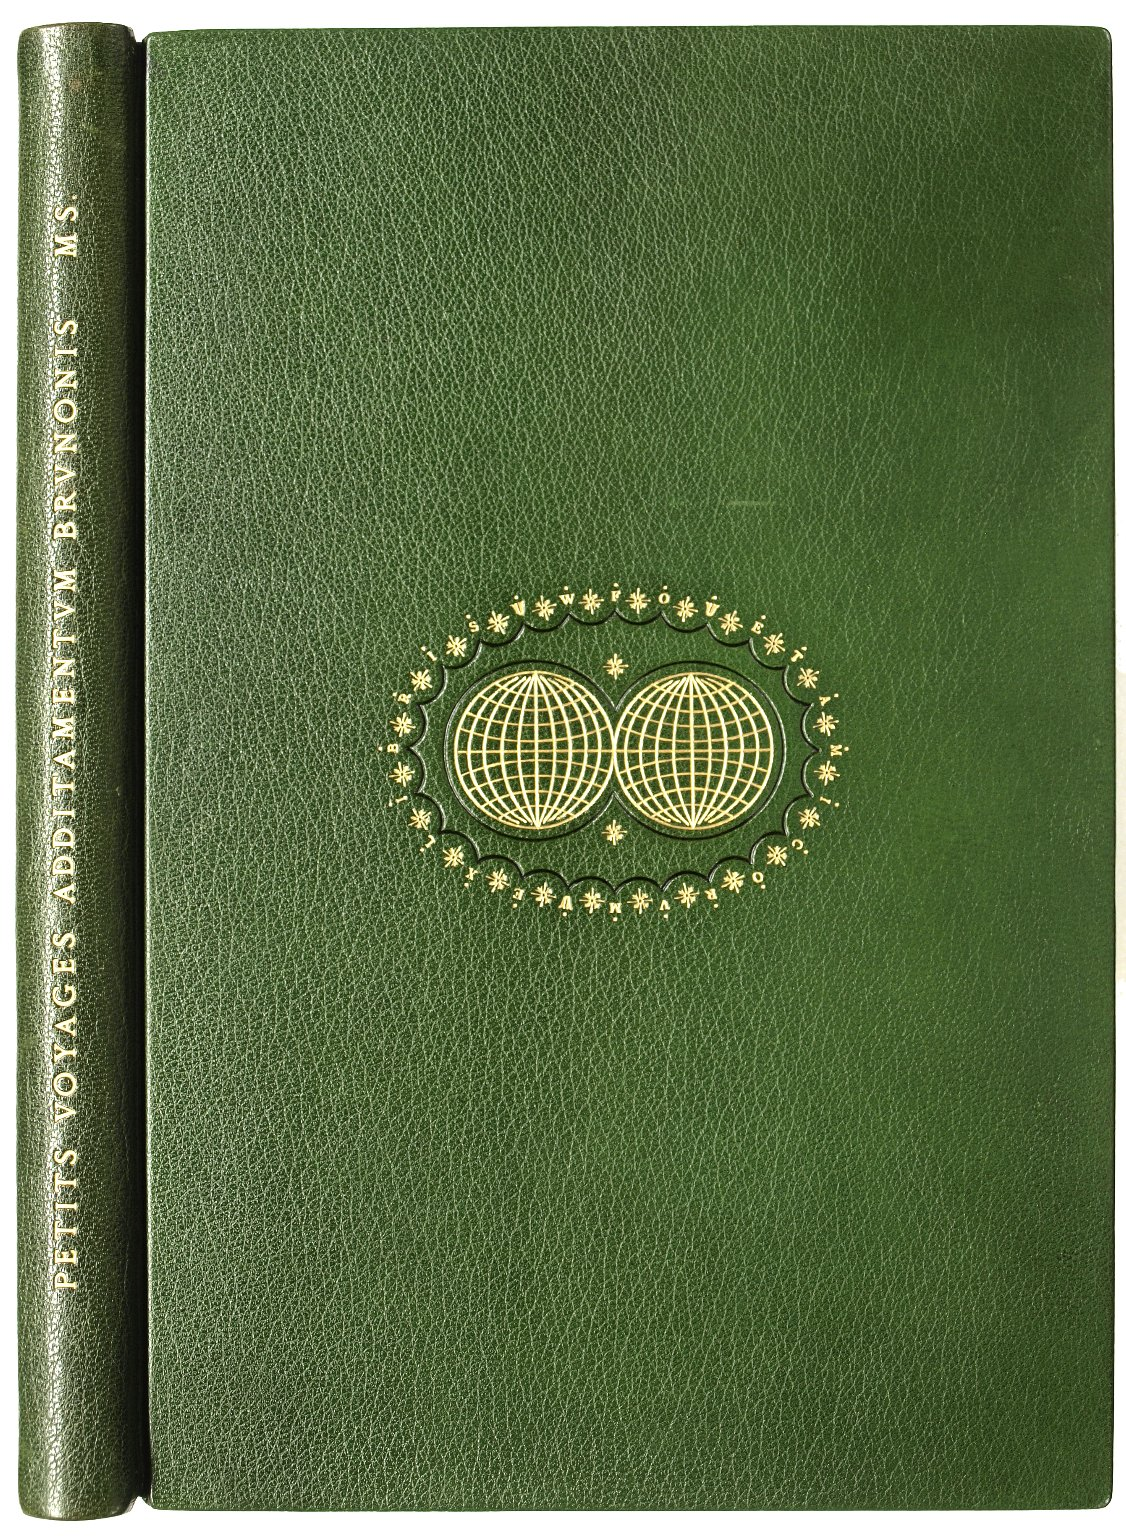 Front cover and spine, Bd.w. G159 .B5 1598 v. 4. Cage